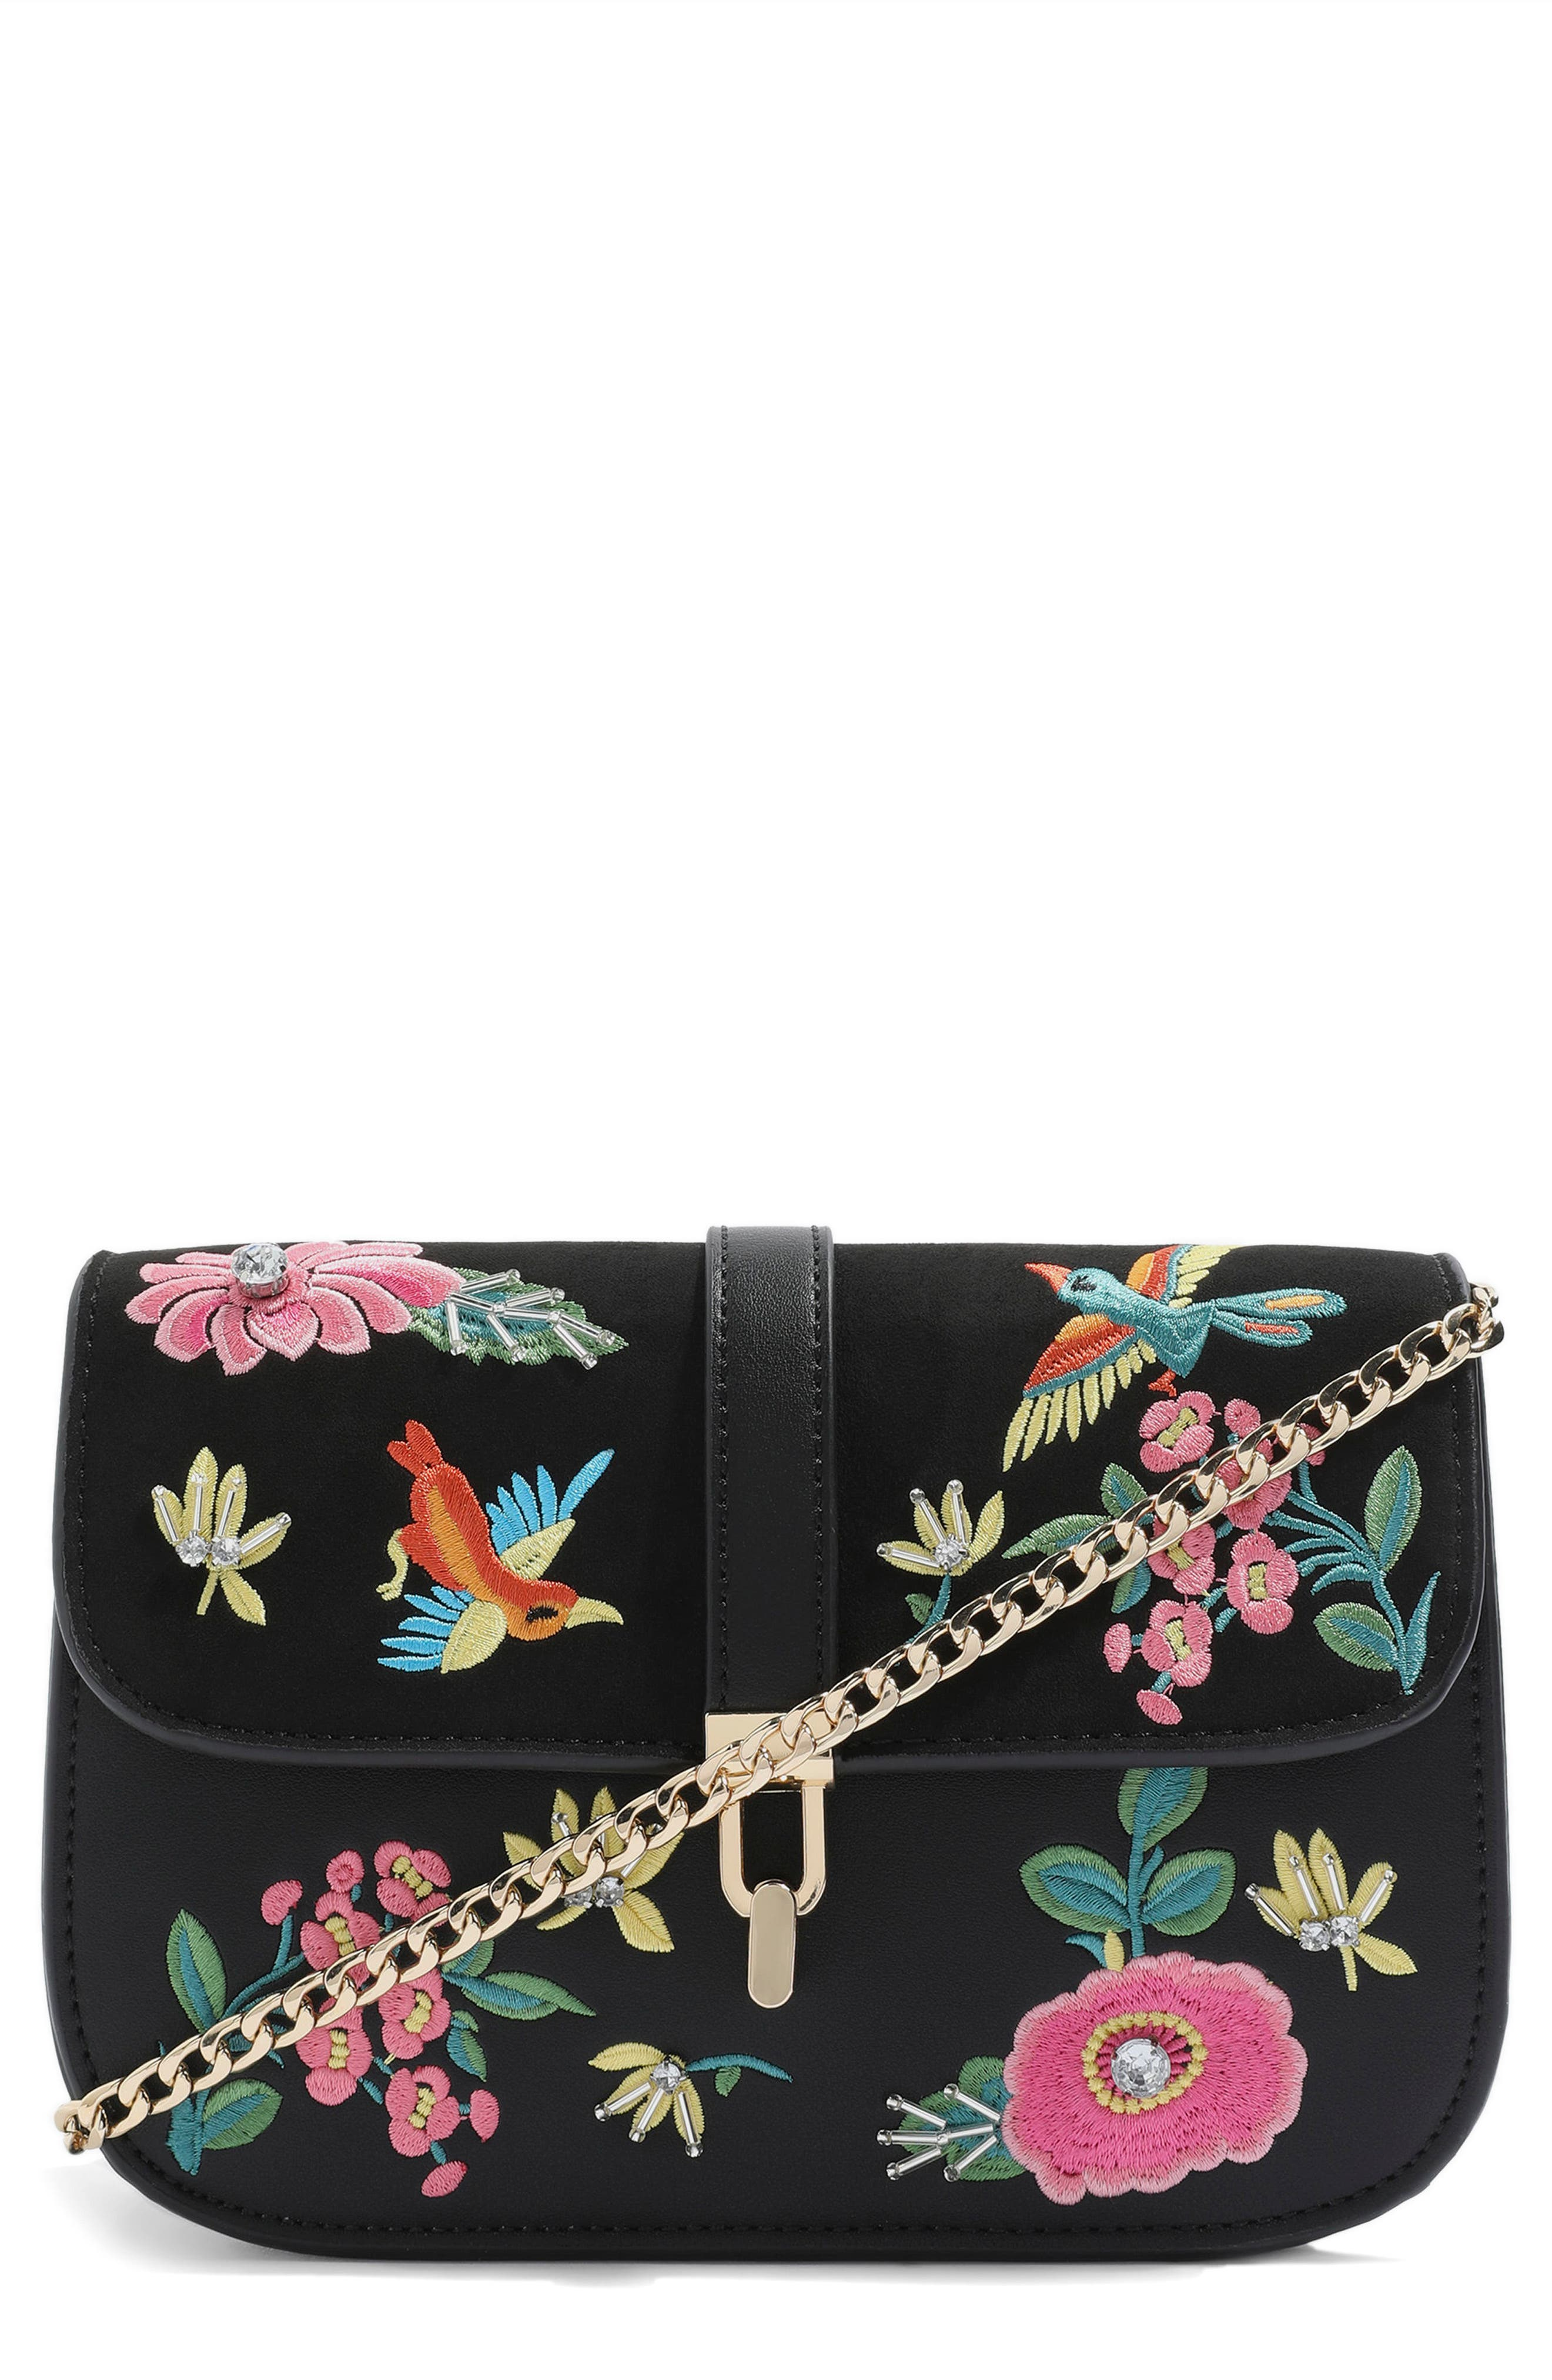 Hummingbird Embroidered Crossbody Bag,                             Main thumbnail 1, color,                             001